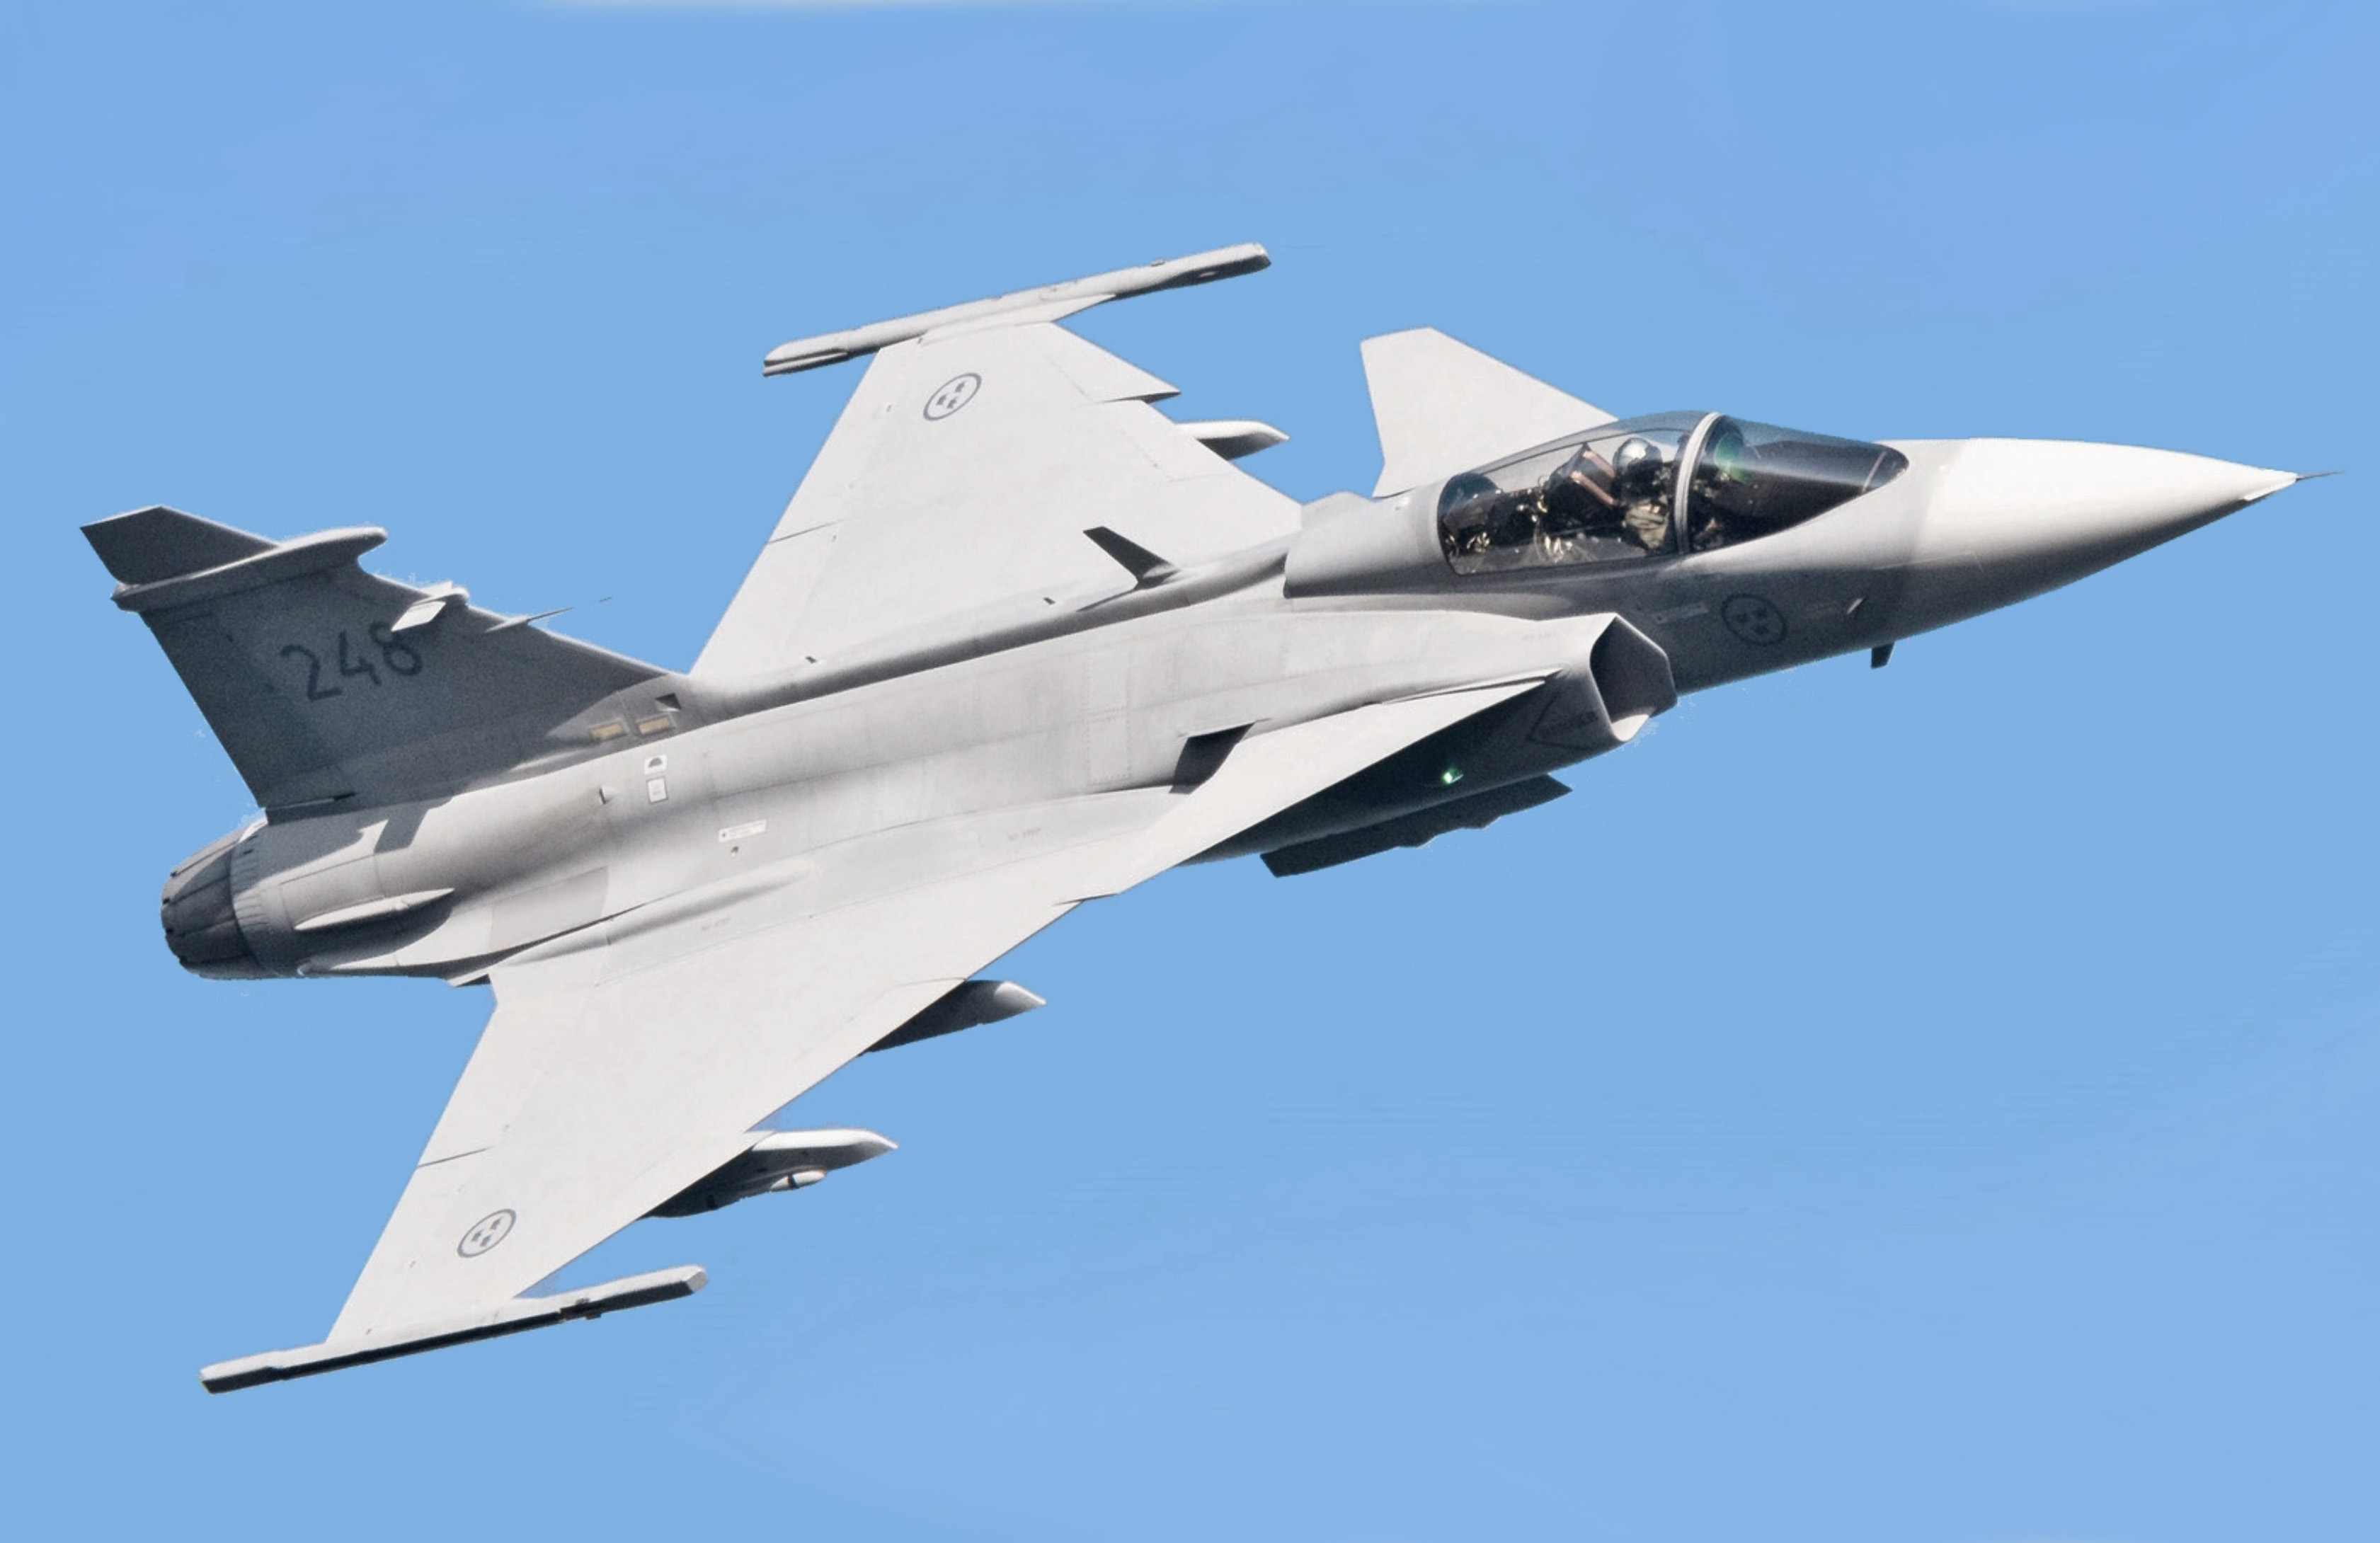 Winterjas Kind 2019.Saab Jas 39 Gripen Wikipedia